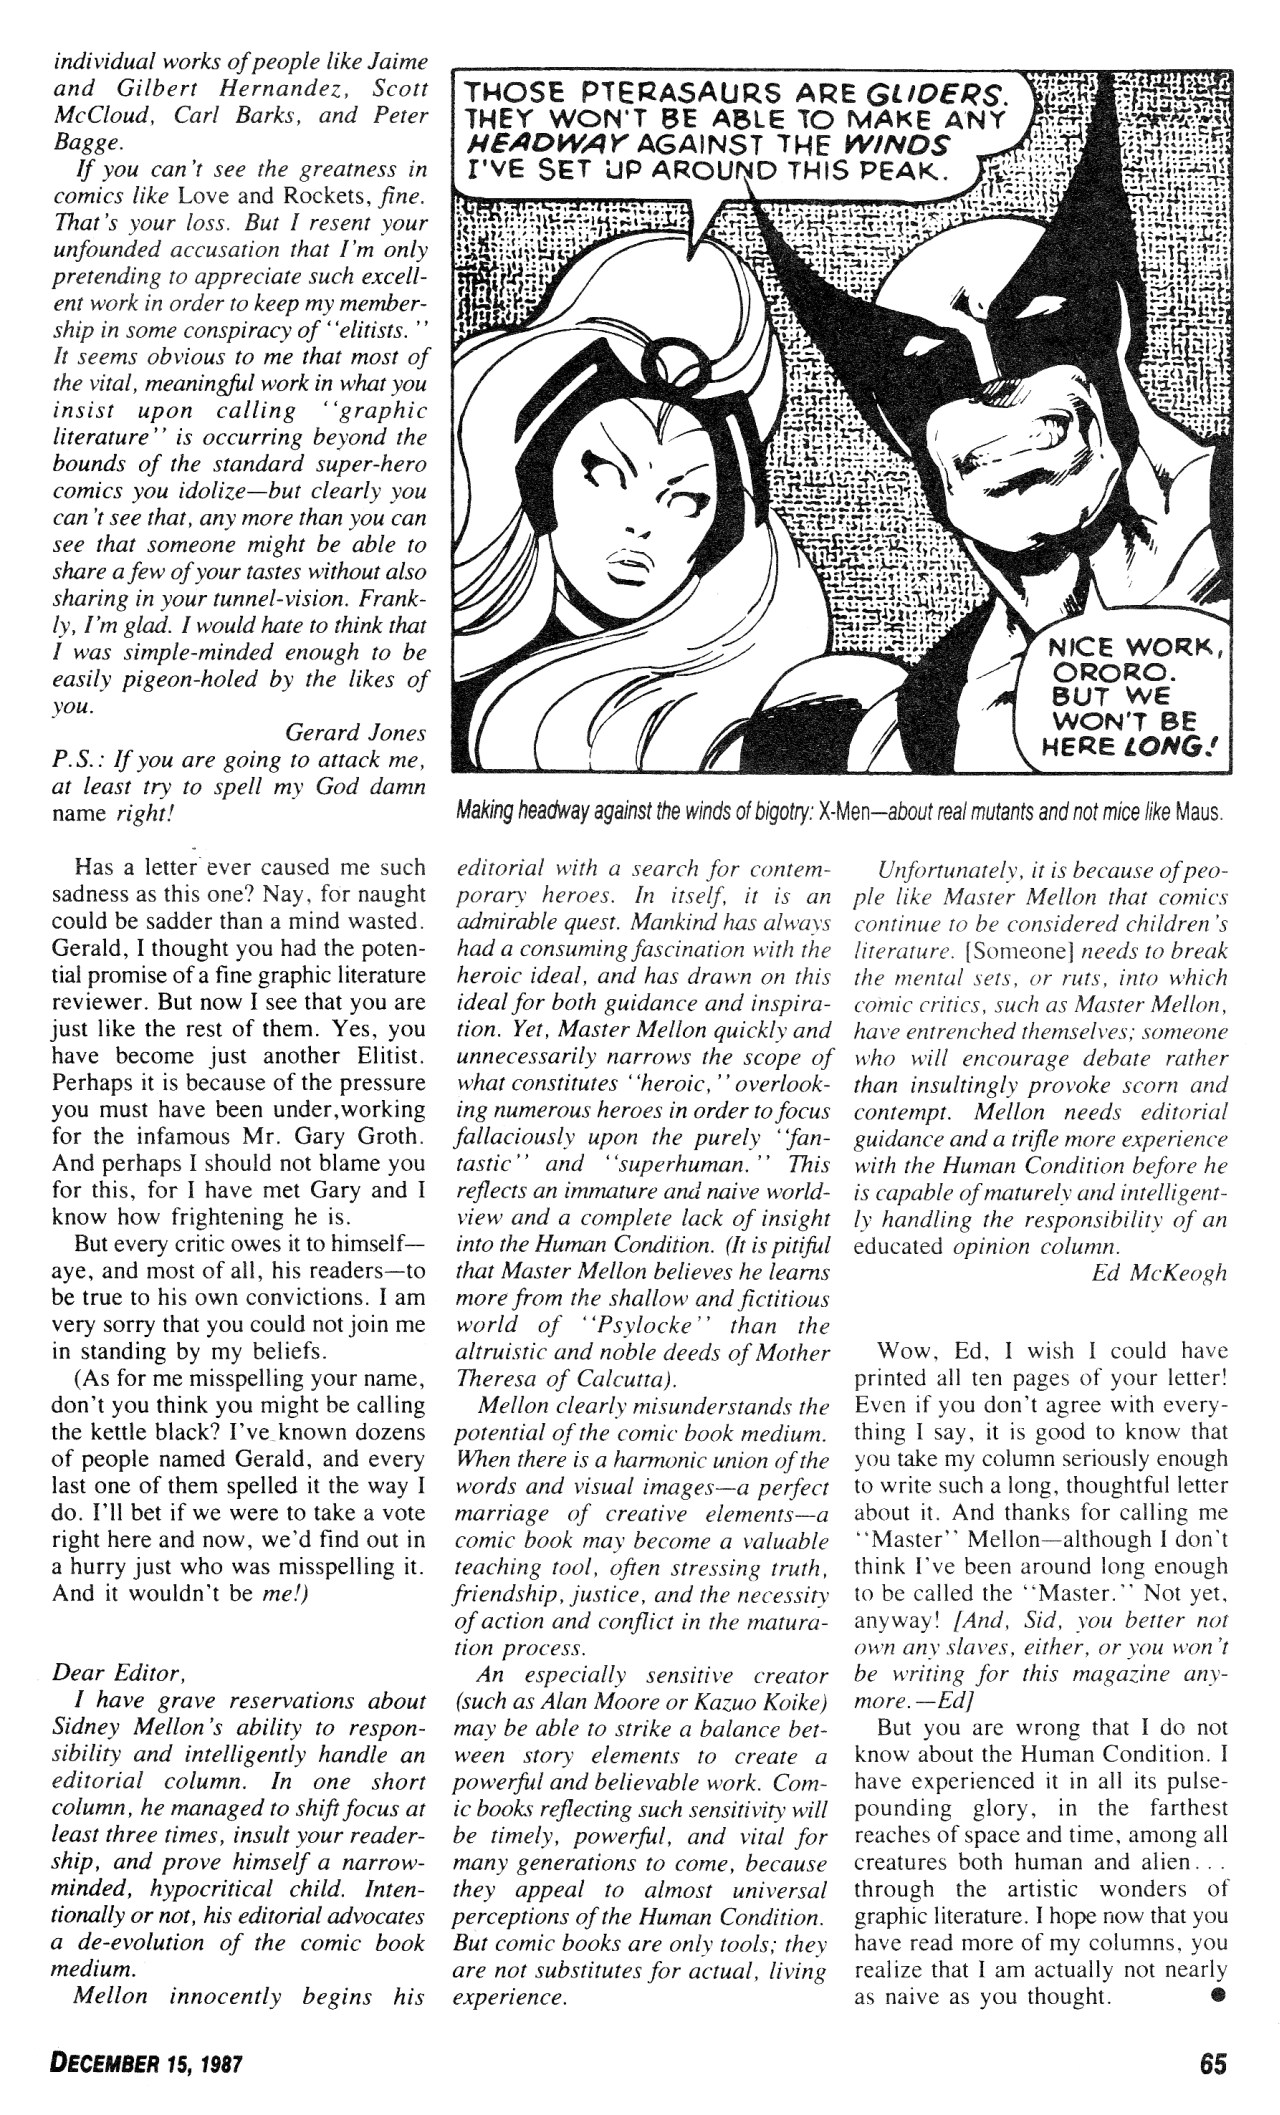 Read online Amazing Heroes comic -  Issue #131 - 65